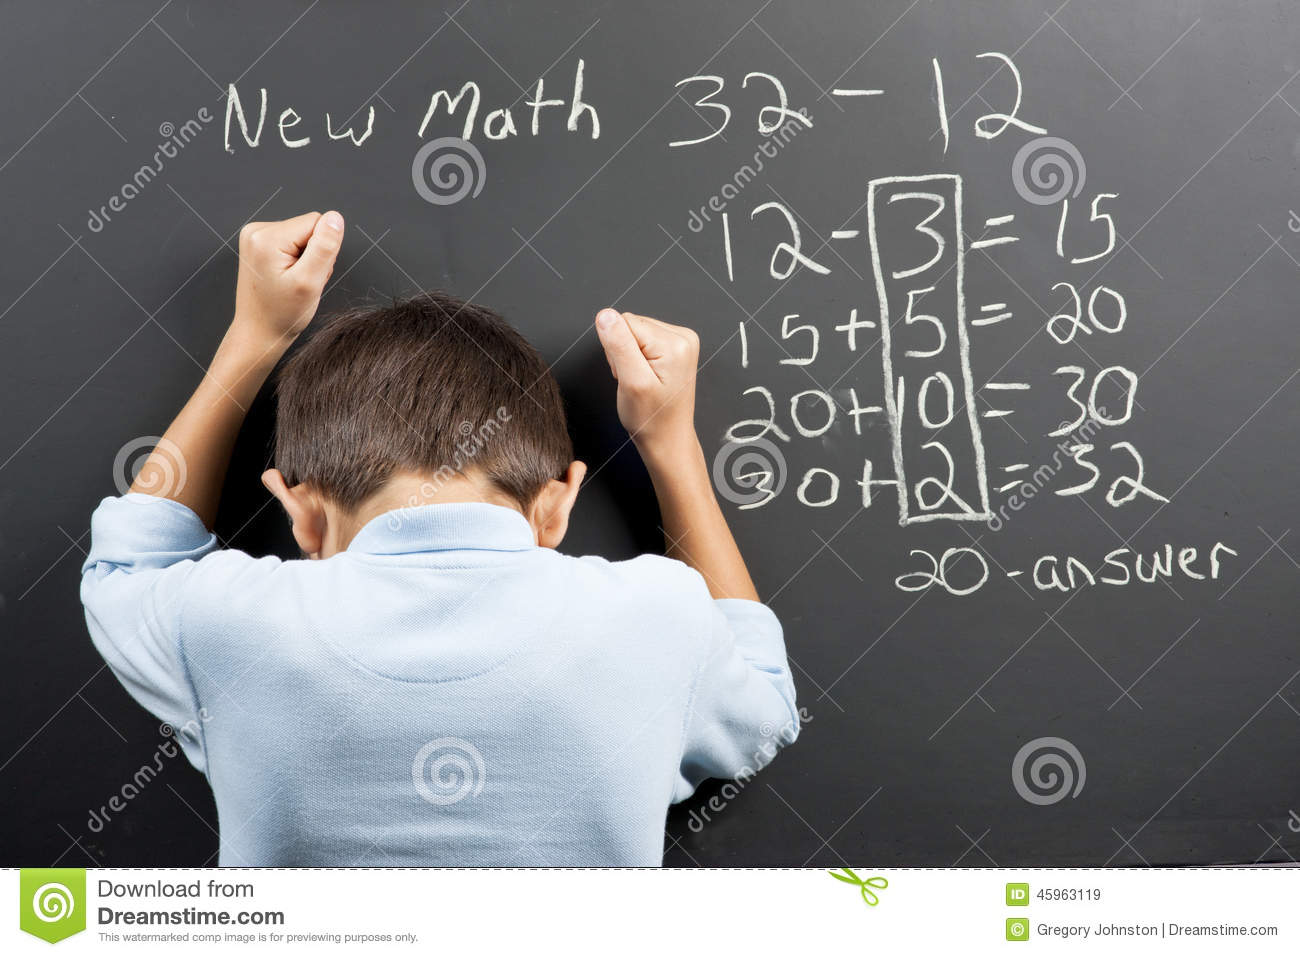 Frustrated At The New Math. Stock Image - Image of math, confusing ...